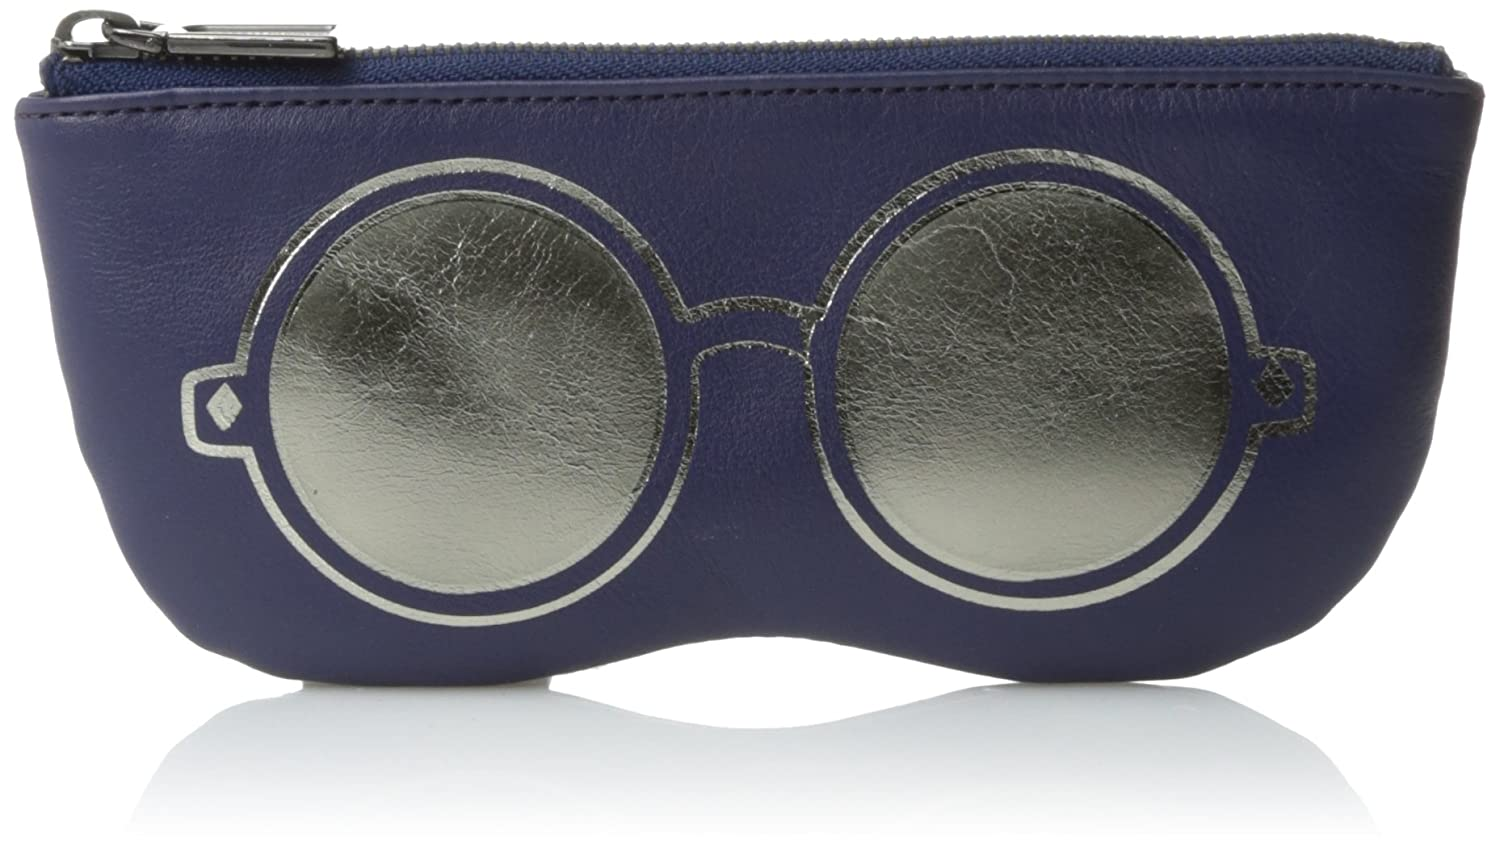 Mirrored Sunnies Pouch, Black, One Size Rebecca Minkoff